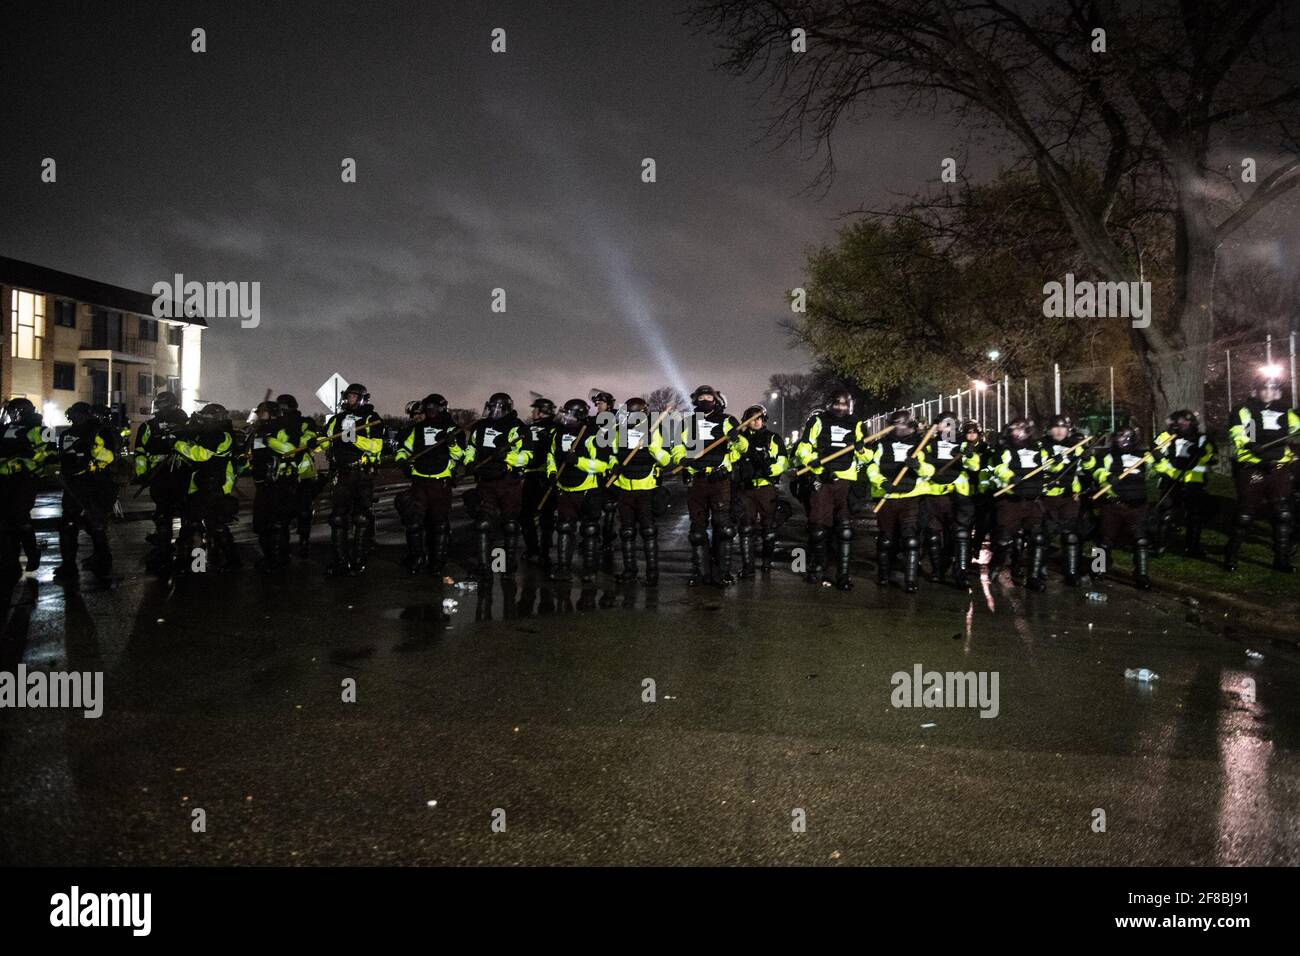 Brooklyn Center, Minnesota, April 12, 2021,  Protestors and Police Officers clash outside the Brooklyn Center Police Department on April 12, 2021 in Brooklyn Center, Minnesota after the killing of Daunte Wright. Photo: Chris Tuite/ImageSPACE /MediaPunch Stock Photo